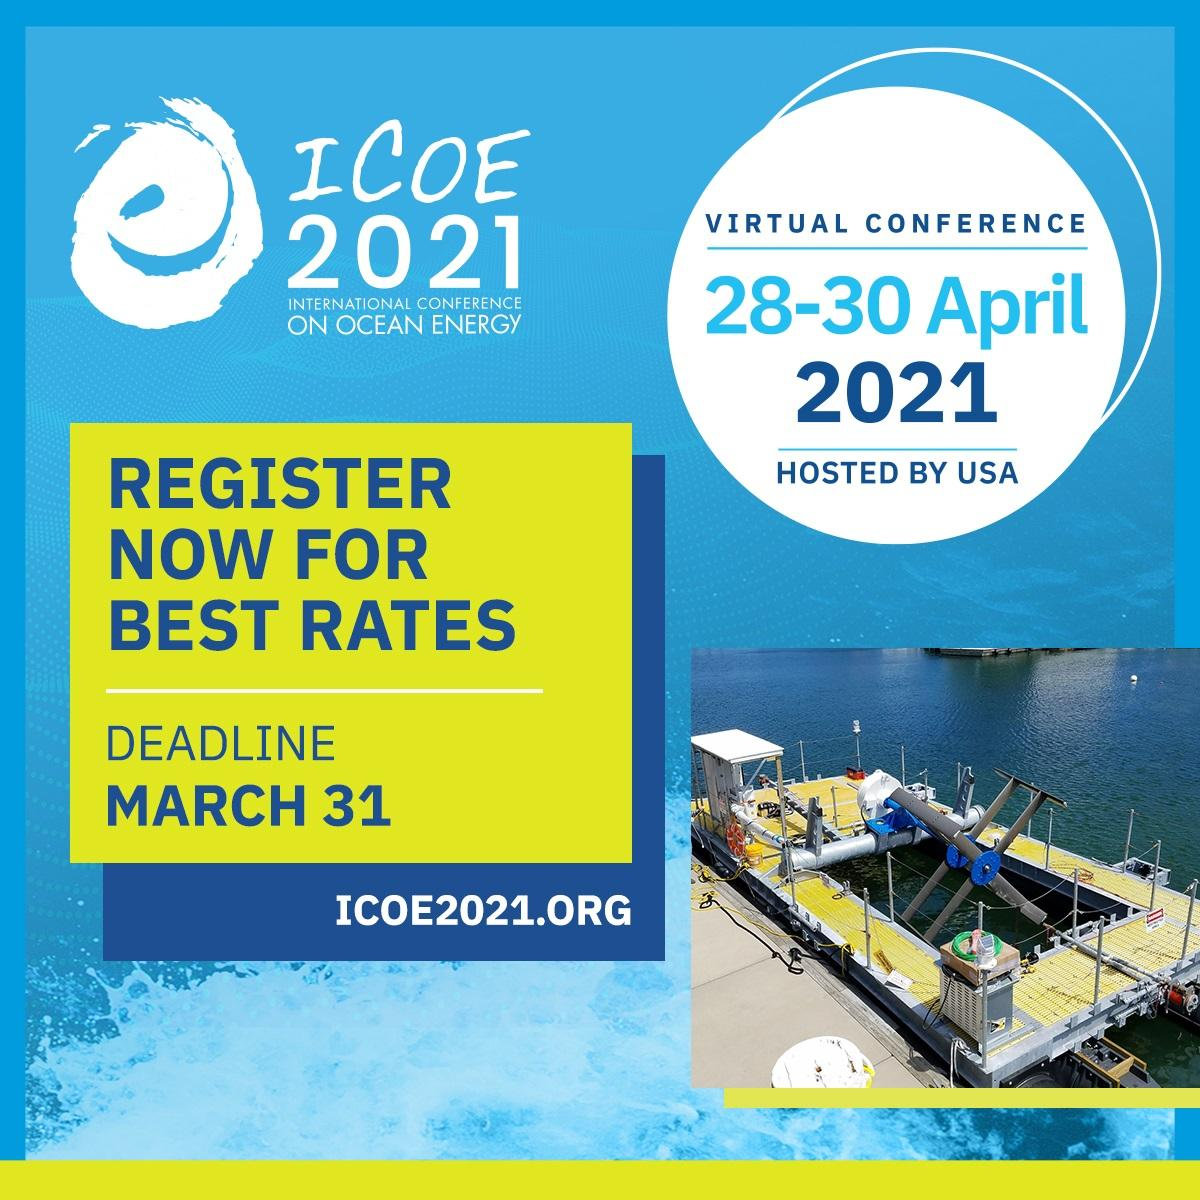 96188-icoe-2021-early-bird-registration.jpg